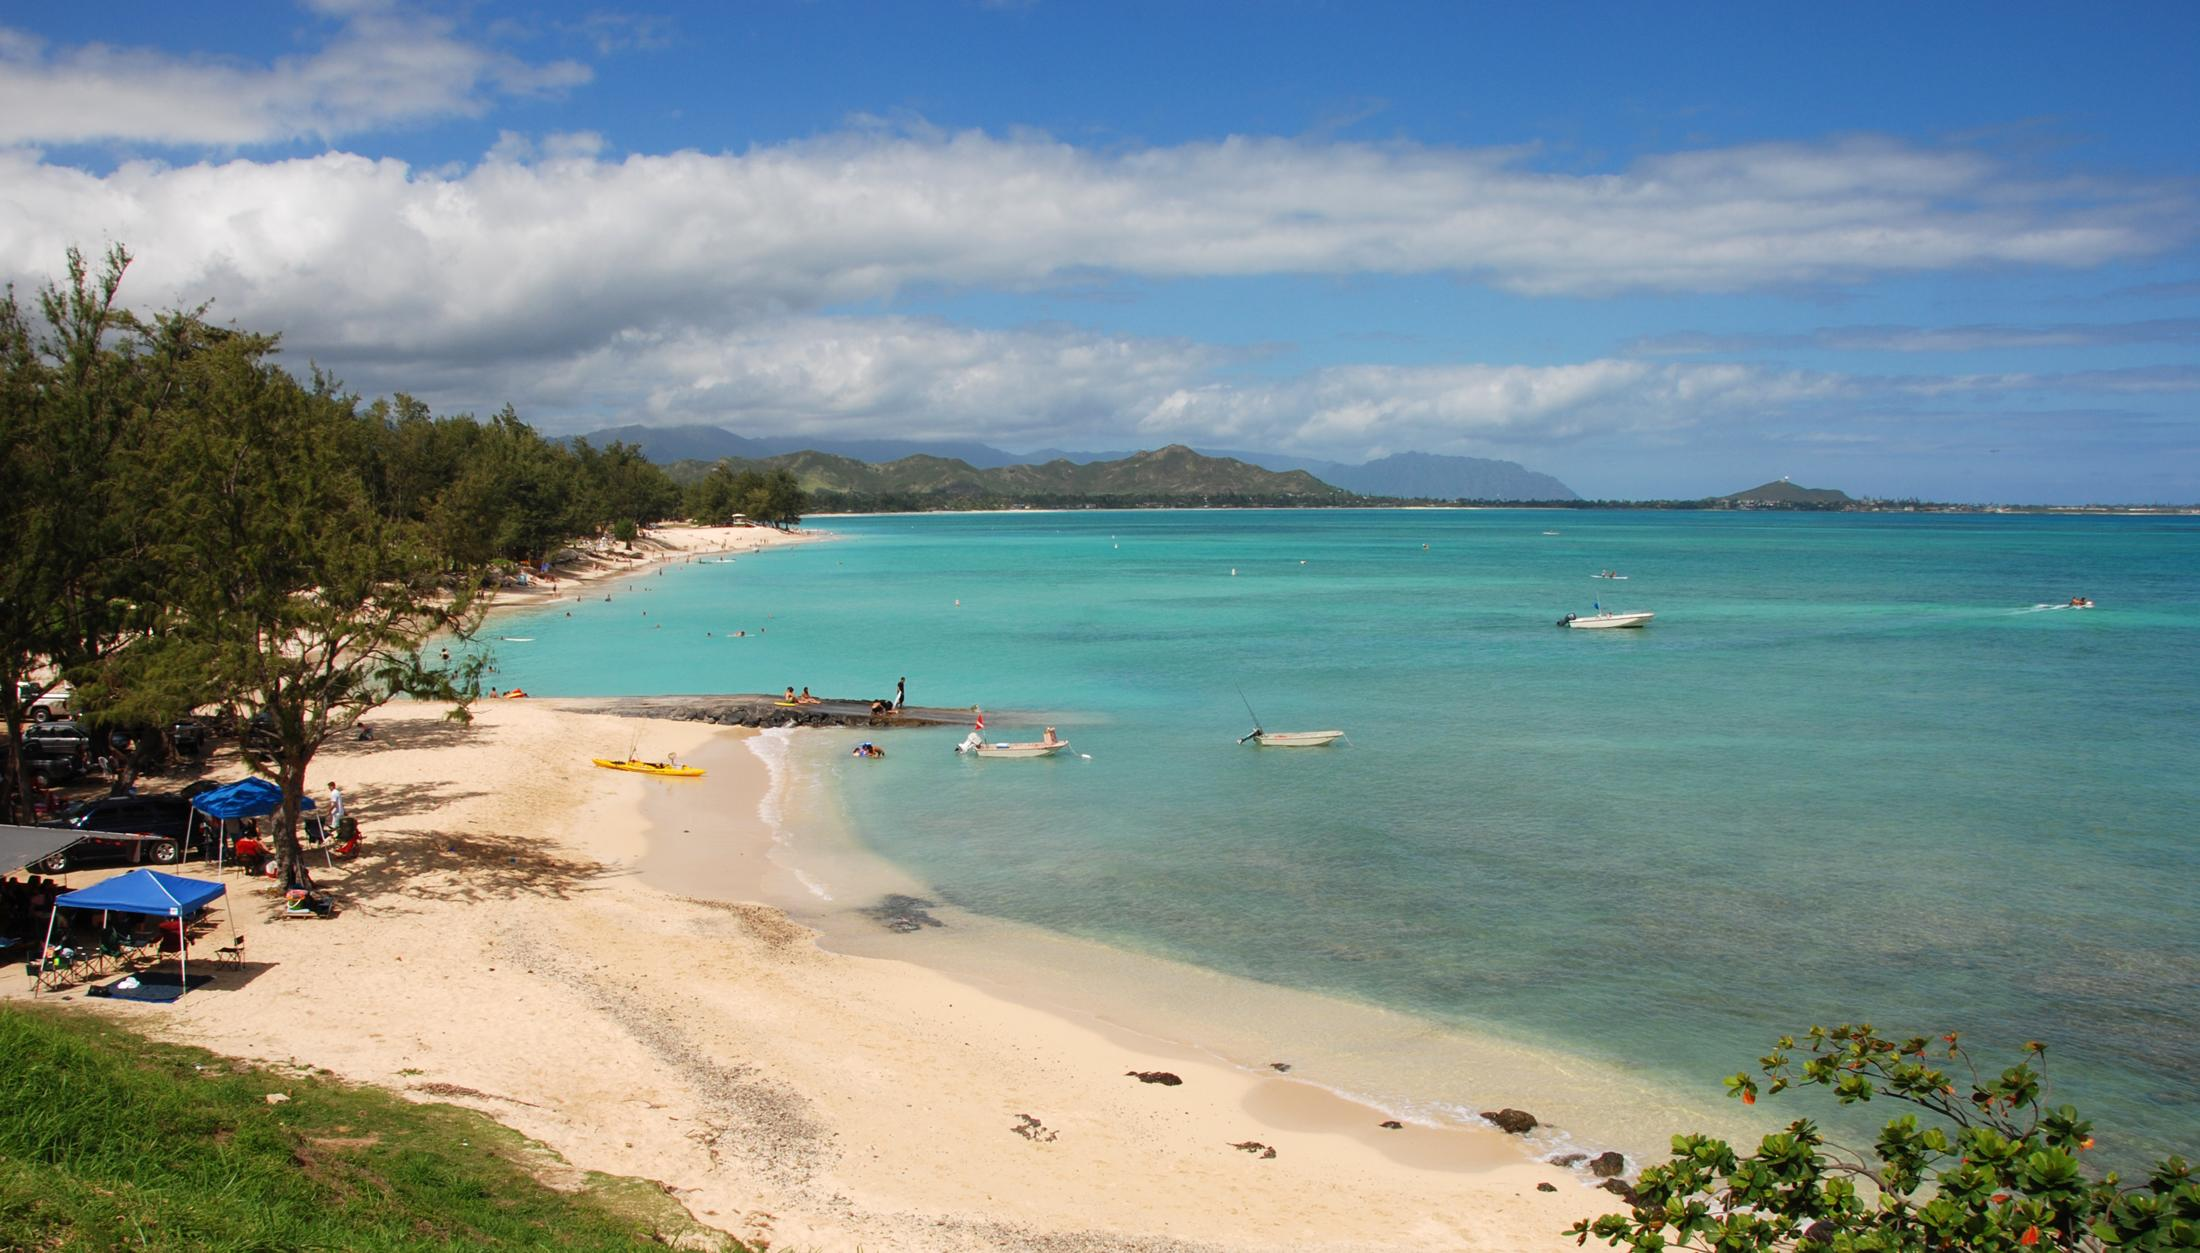 Best Beaches In Hawaii 2019 Hawaii claims top spot on list of America's best beaches 2019